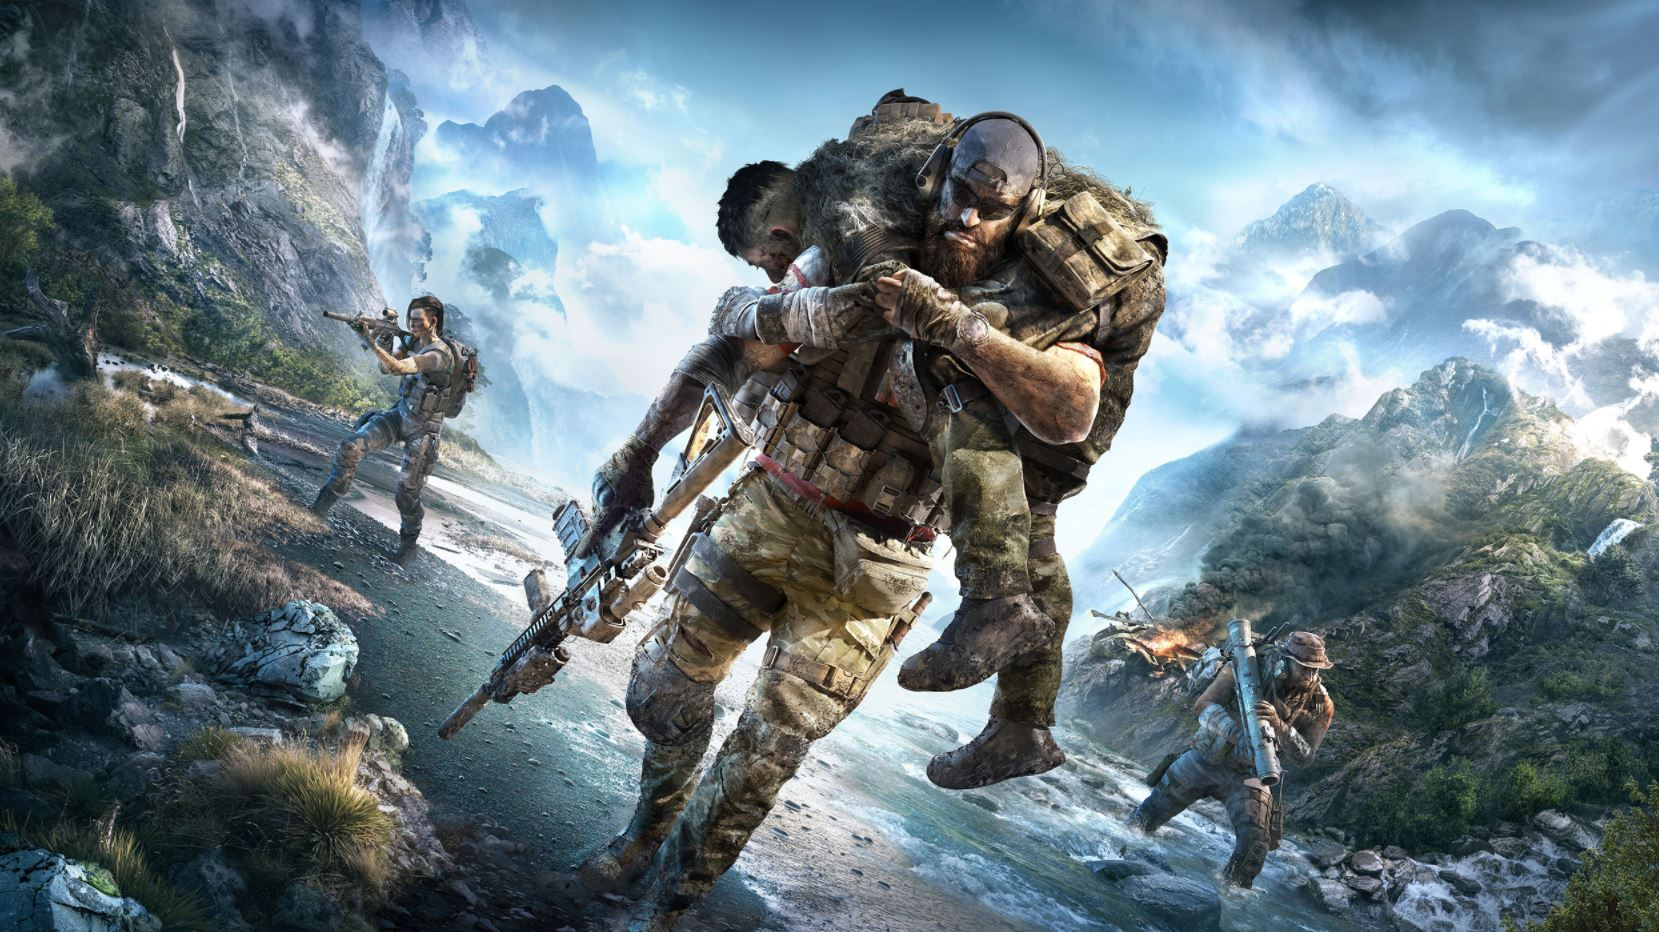 ghost-recon-breakpoint-ps5-update-optimises-the-game-with-4k-resolution-mode-and-60-fps-performance-mode